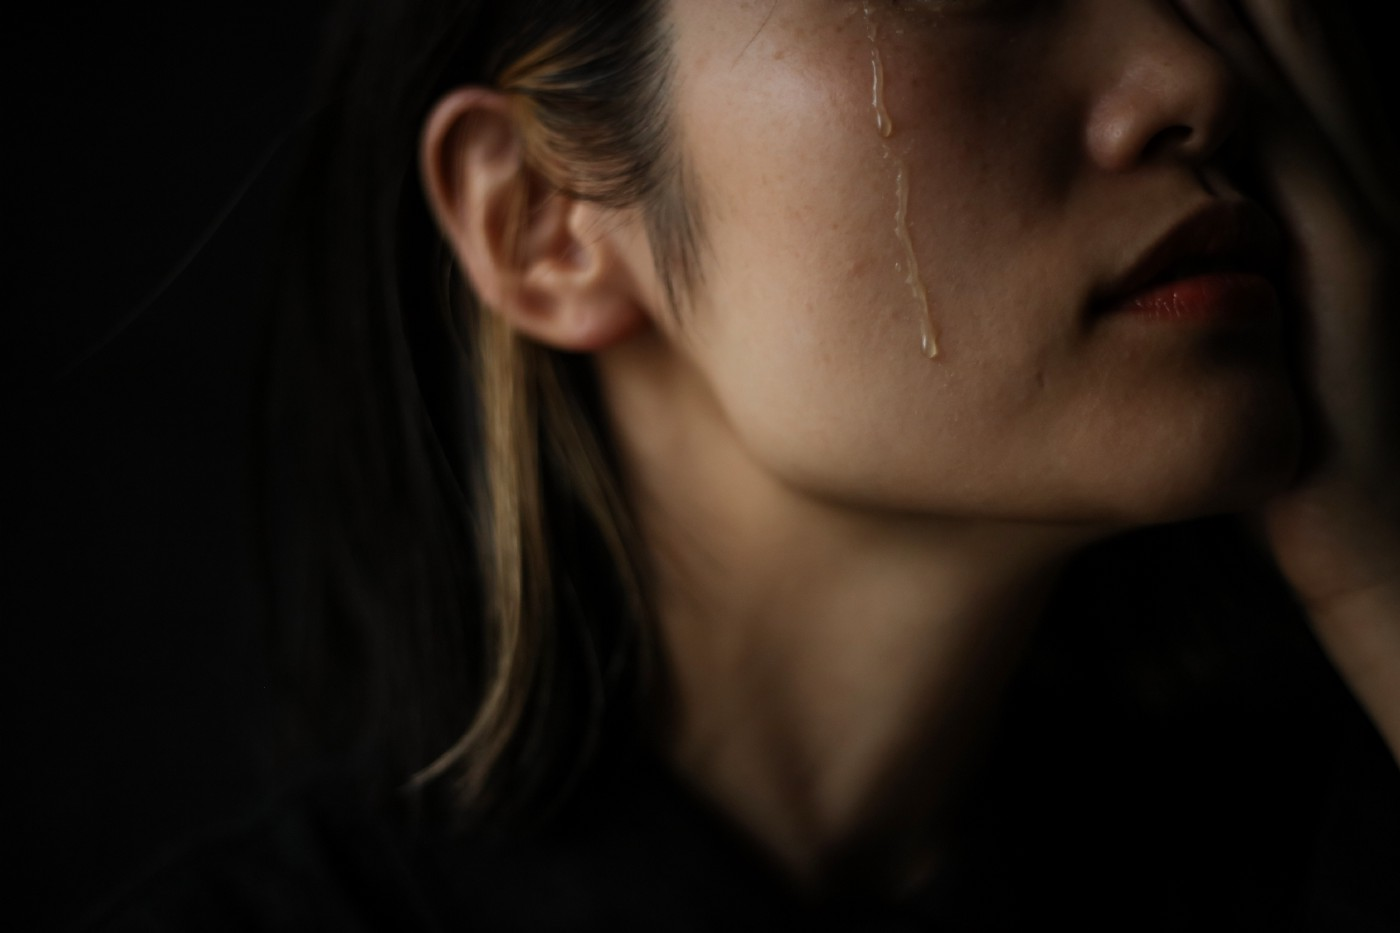 Moody shot of a person with long hair and a tear rolling down their cheek. Their eyes are out of frame.